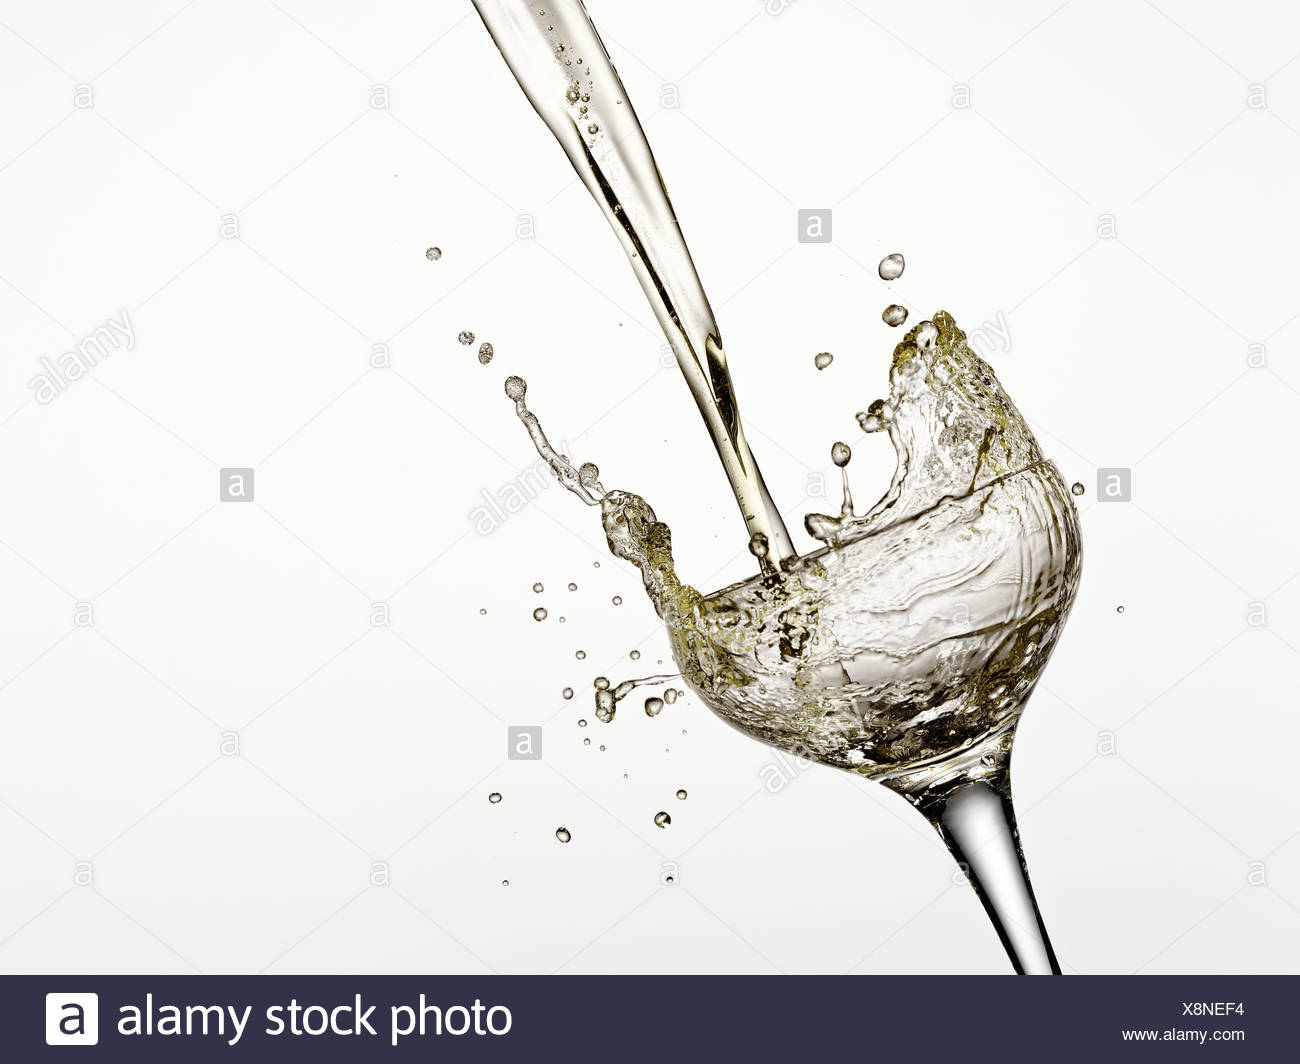 Champagne being poured into glass - Stock Image